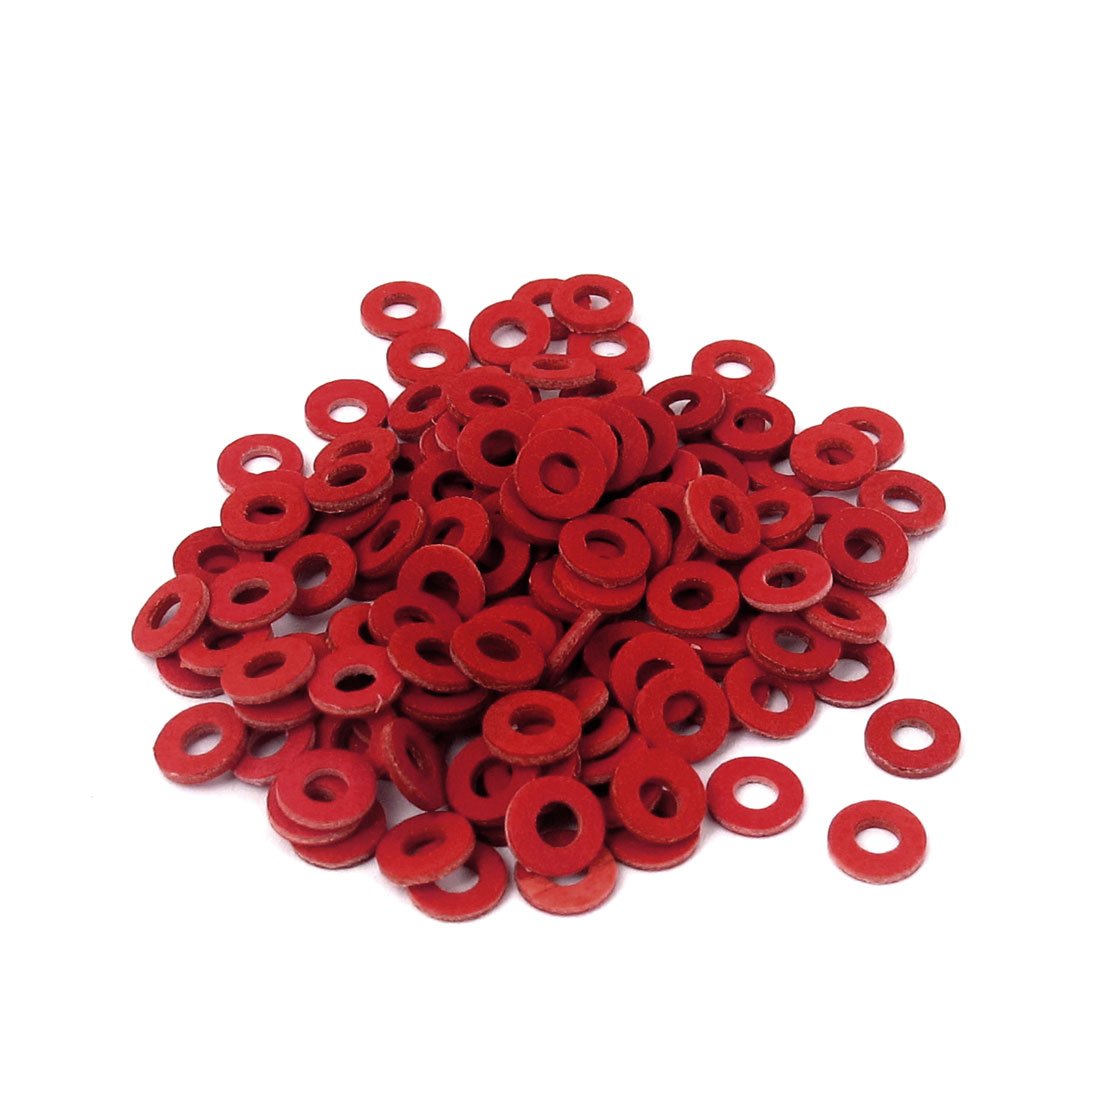 2.5mmx5.5mmx1mm Fiber Motherboard Insulating Pad Fastening Washer Red 100pcs